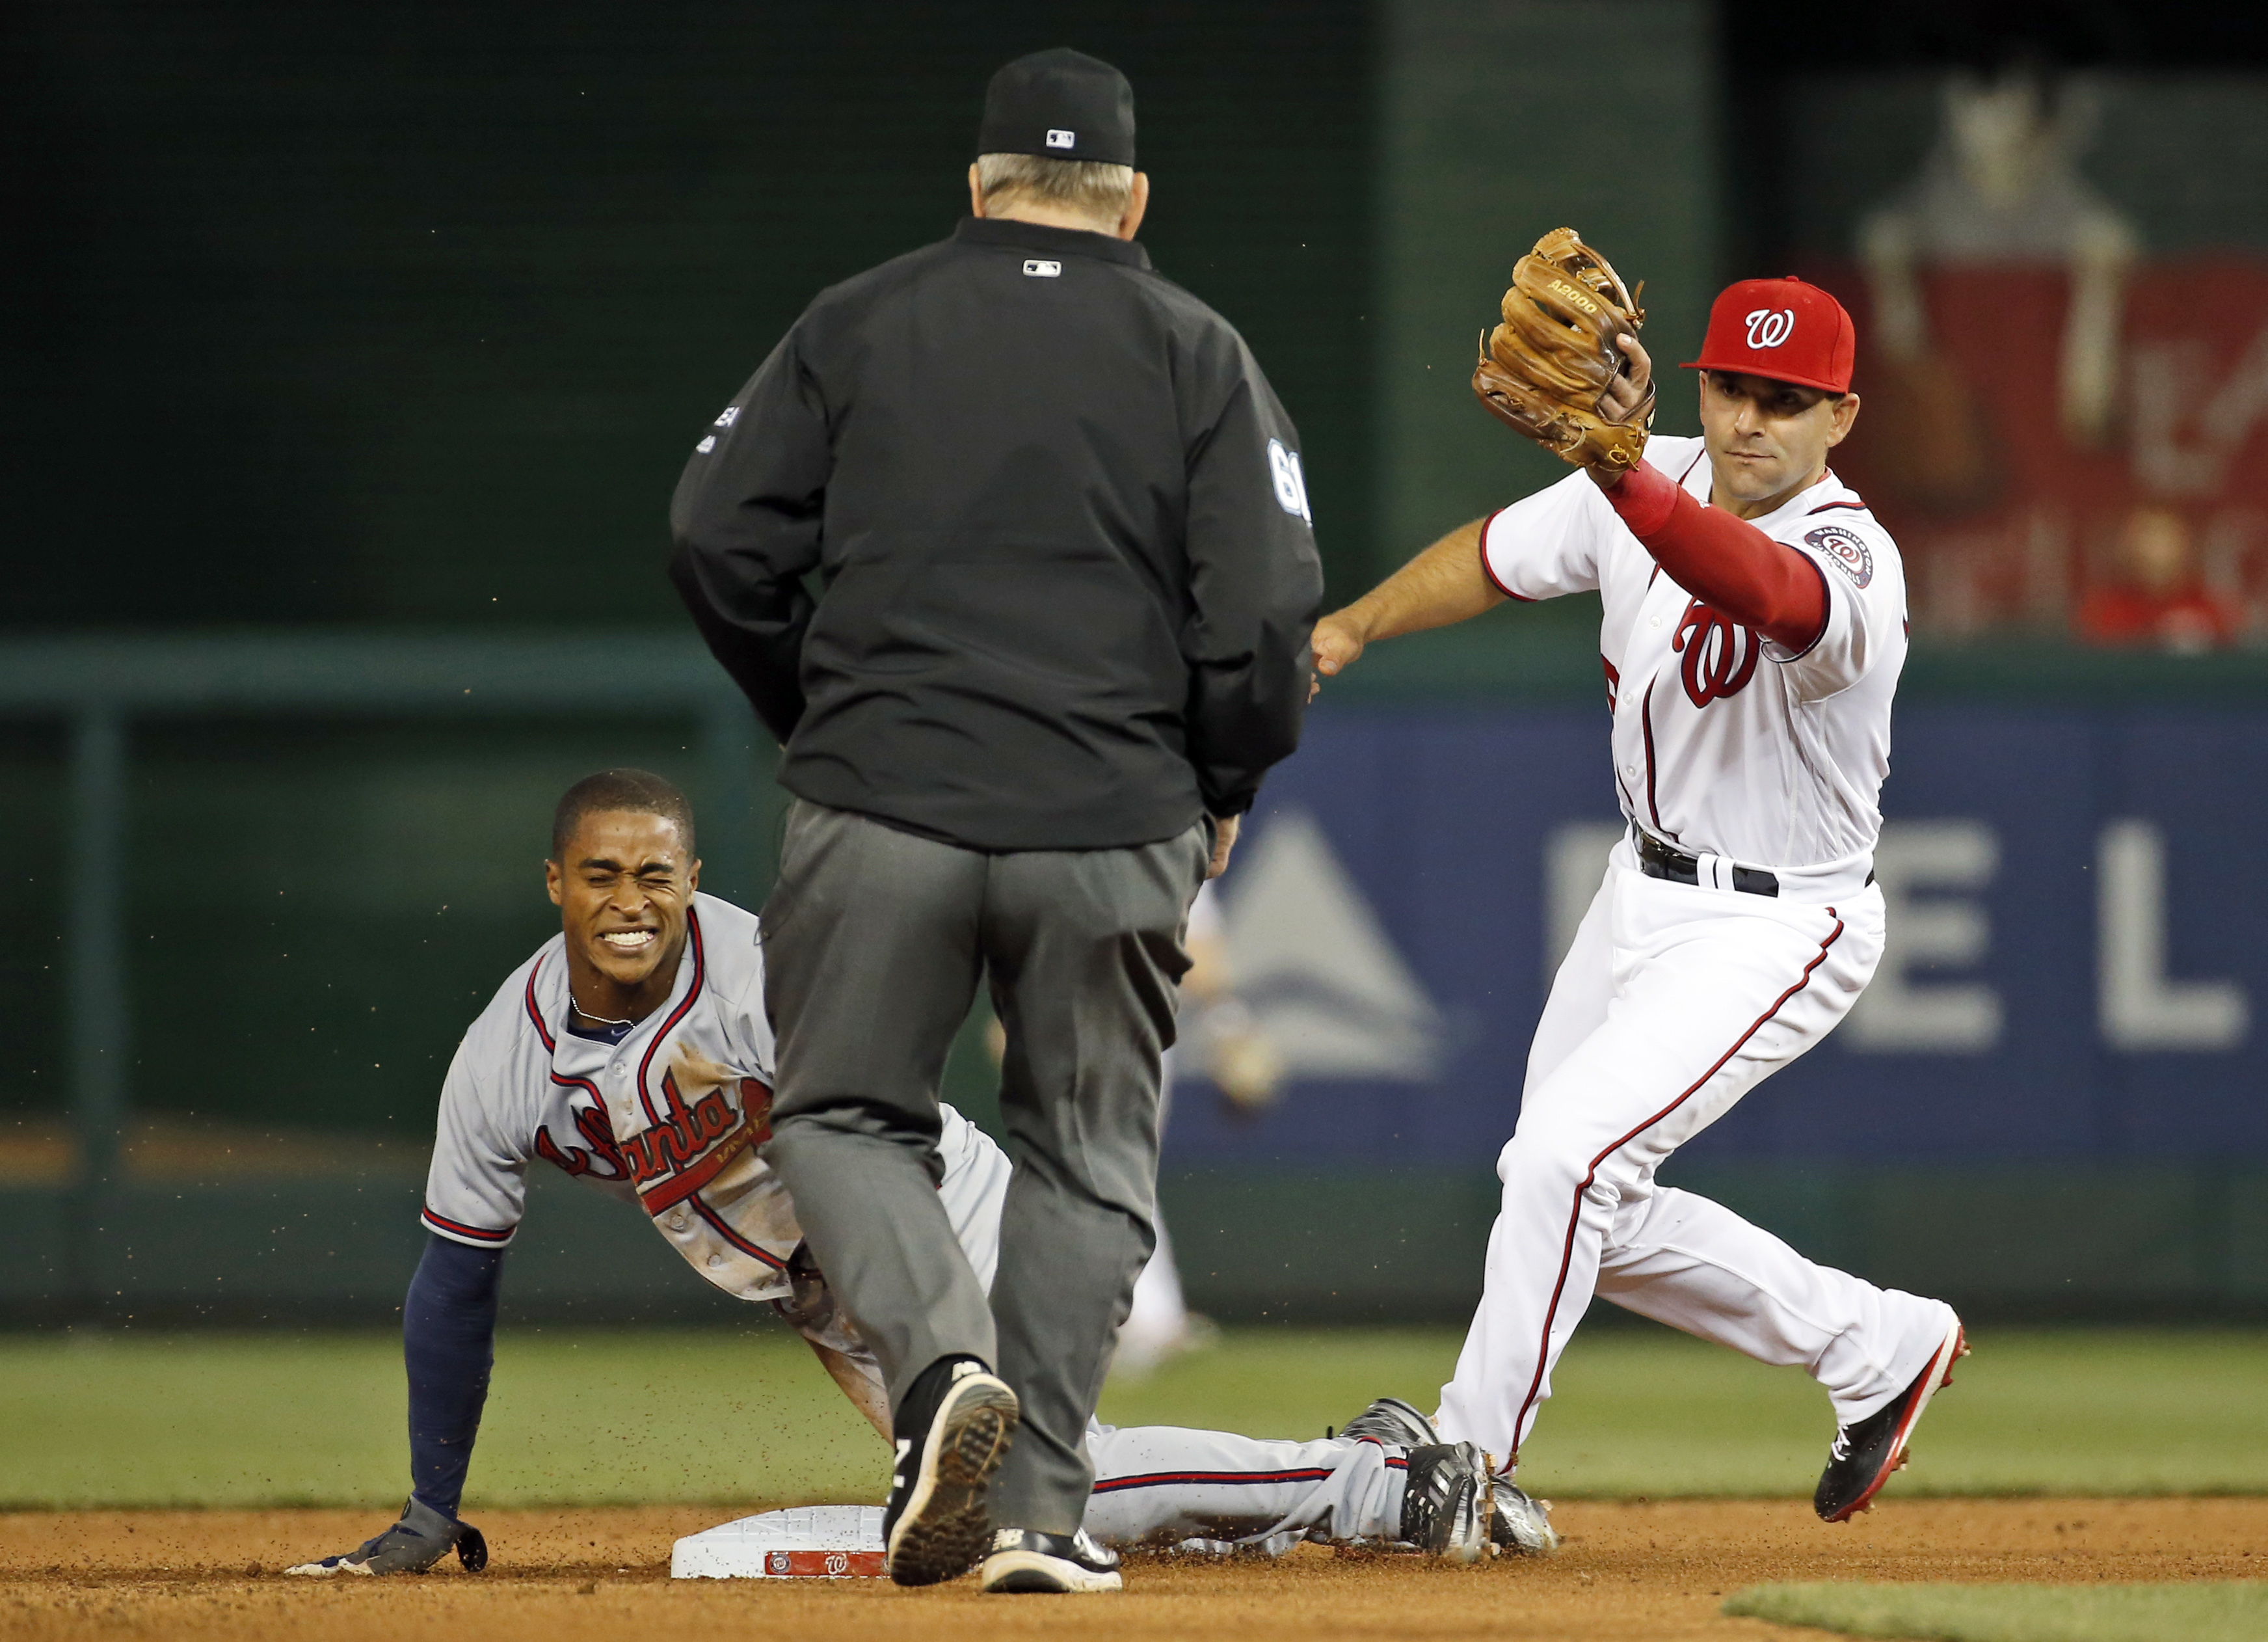 Washington Nationals second baseman Danny Espinosa, right, holds up his glove with the ball in it after making a tag on Atlanta Braves' Mallex Smith for the out on the steal attempt of second base during the fourth inning of a baseball game at Nationals P